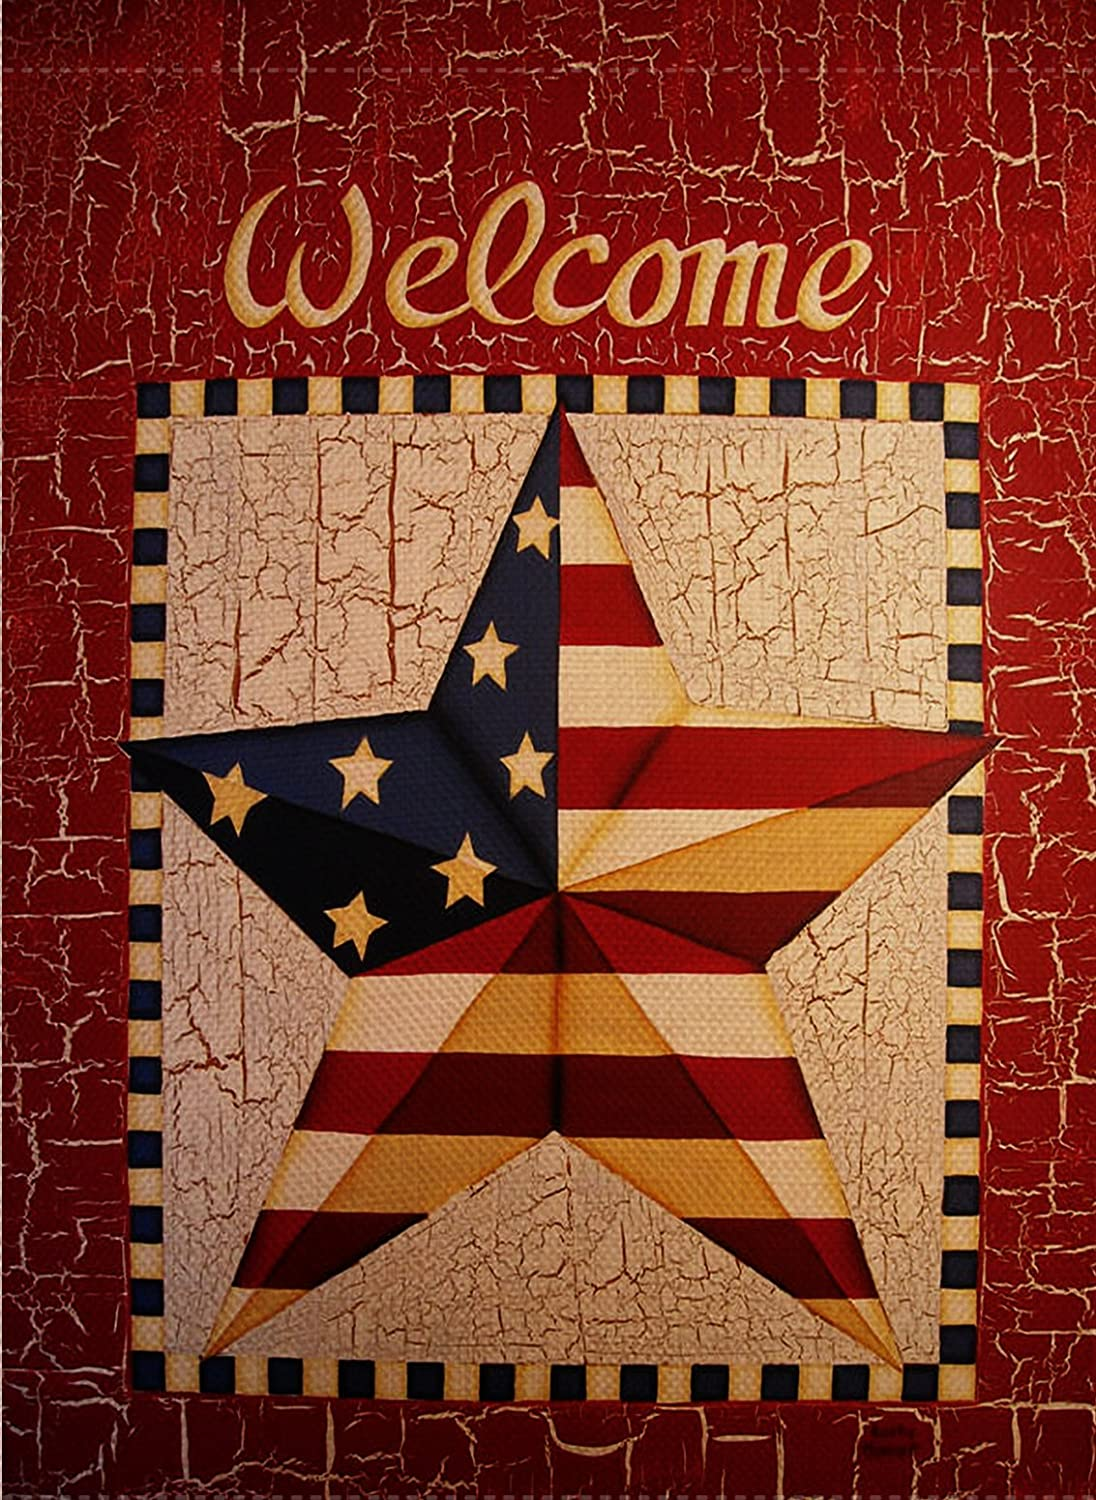 Dyrenson Decorative Welcome Quote 4th of July Patriotic Garden Flag Double Sided, Rustic Stars Stripes House Yard Flag, Primitive Garden Yard Decorations, American USA Seasonal Outdoor Flag 12 x 18